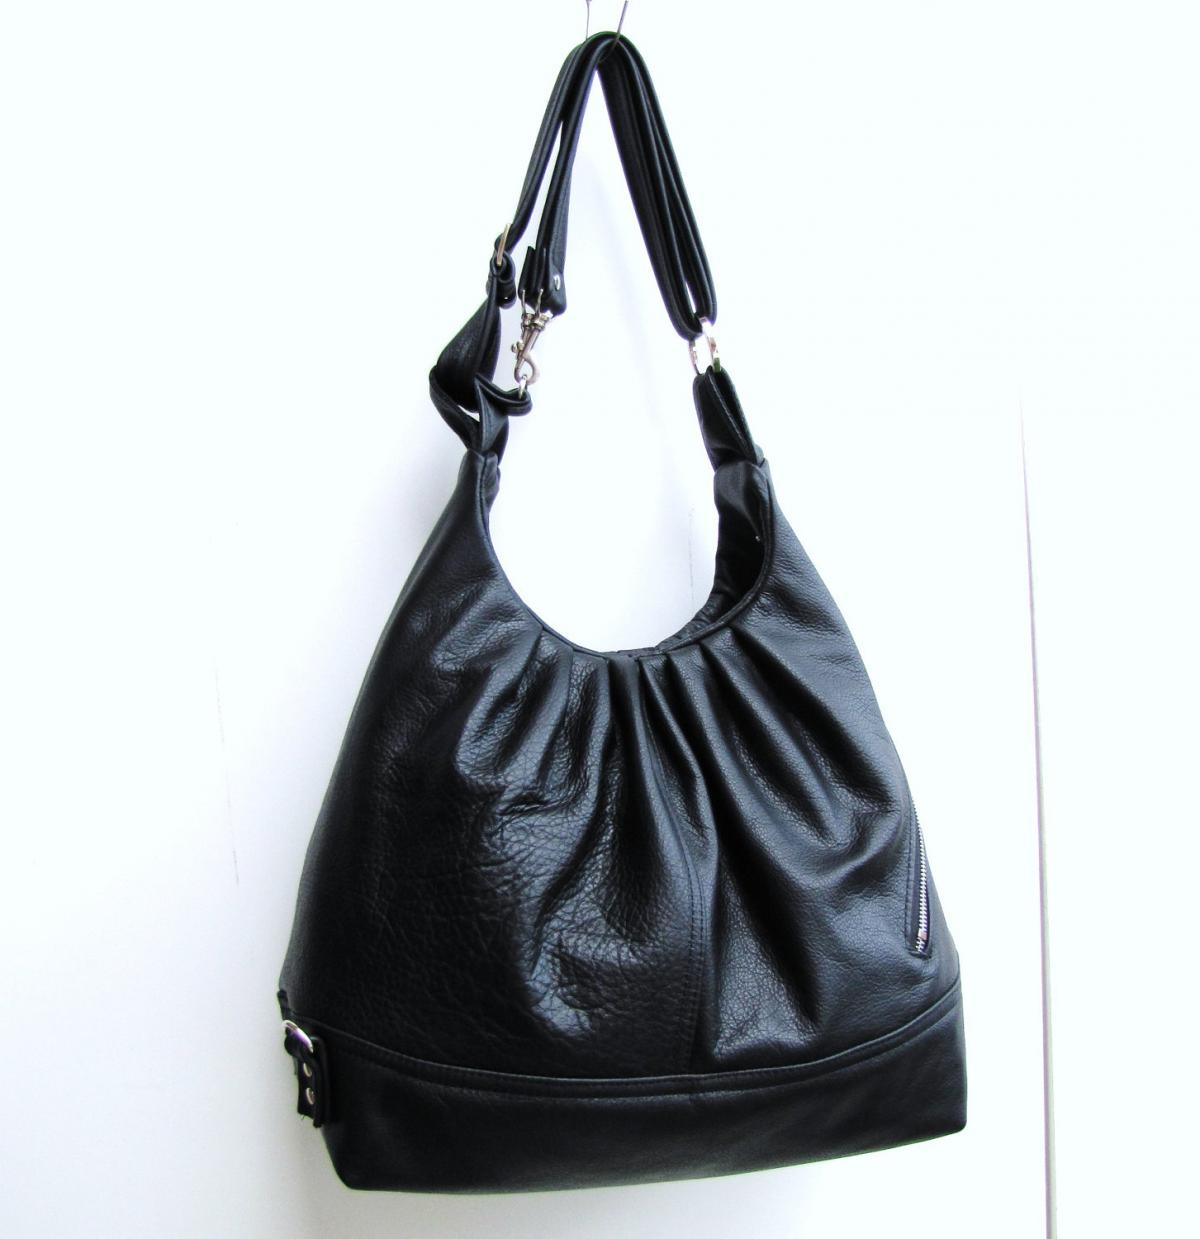 Black leather bag, large 3 way bag, convertible purse, women packpack - Black Diamond